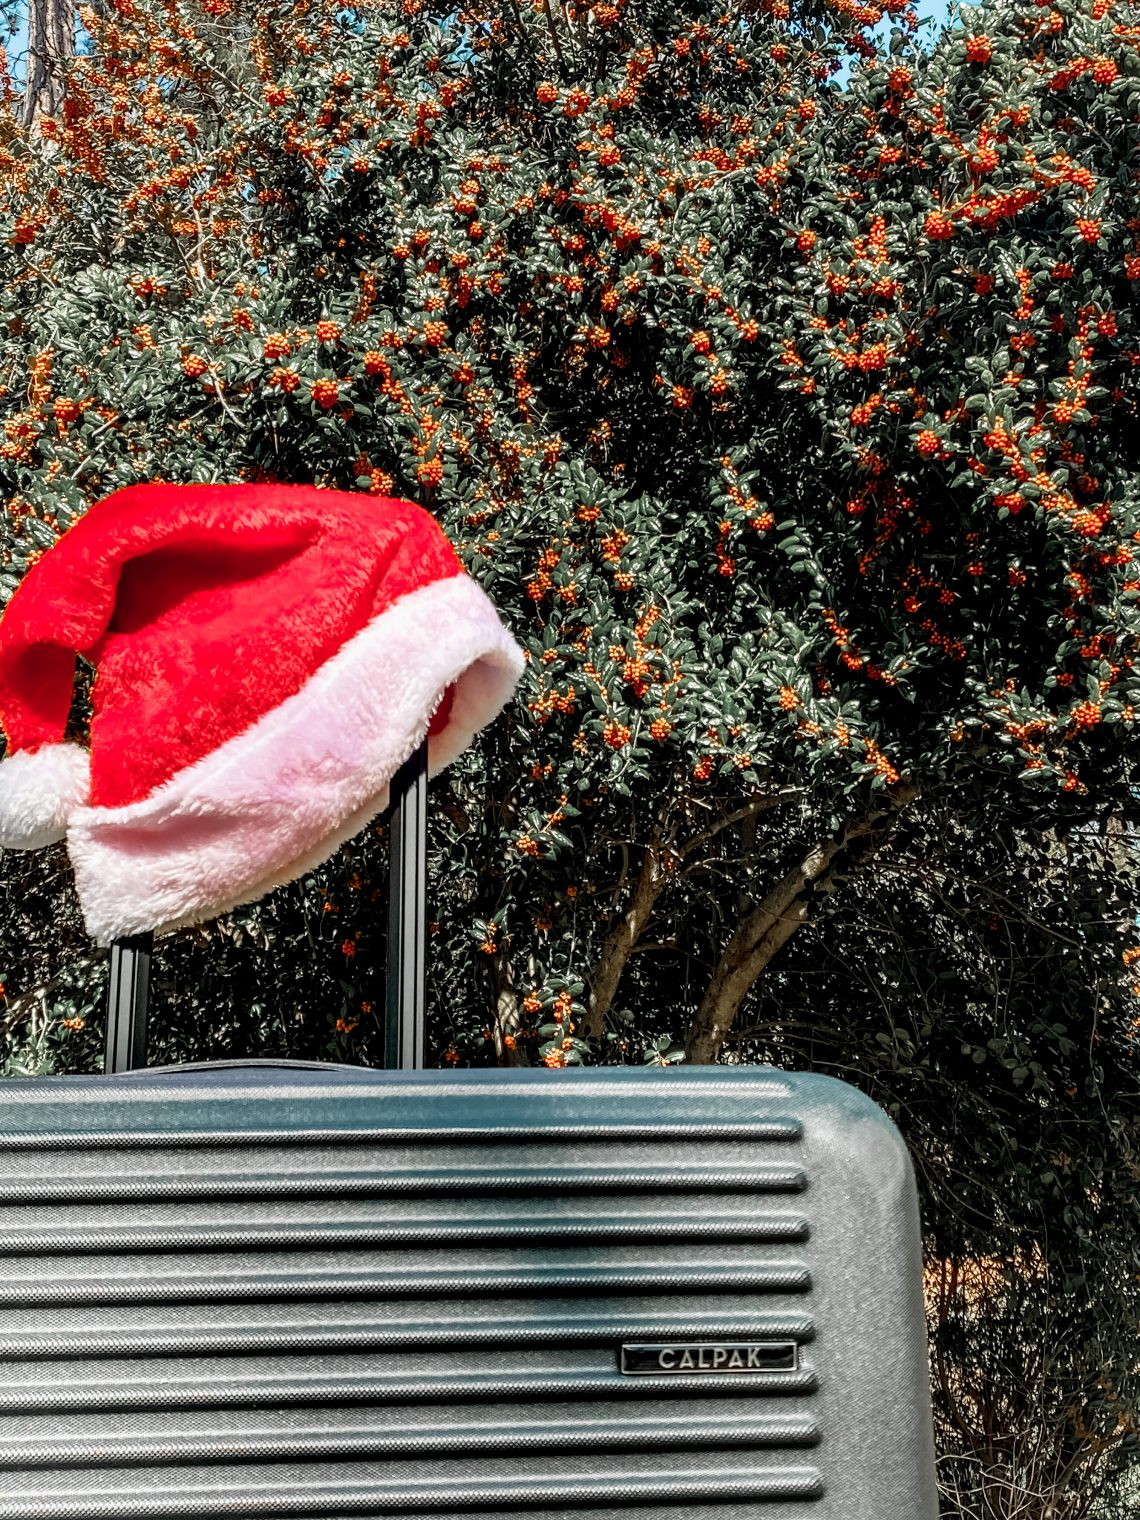 Rolling Luggage with a santa hat on the handle in front of a holly bush/tree